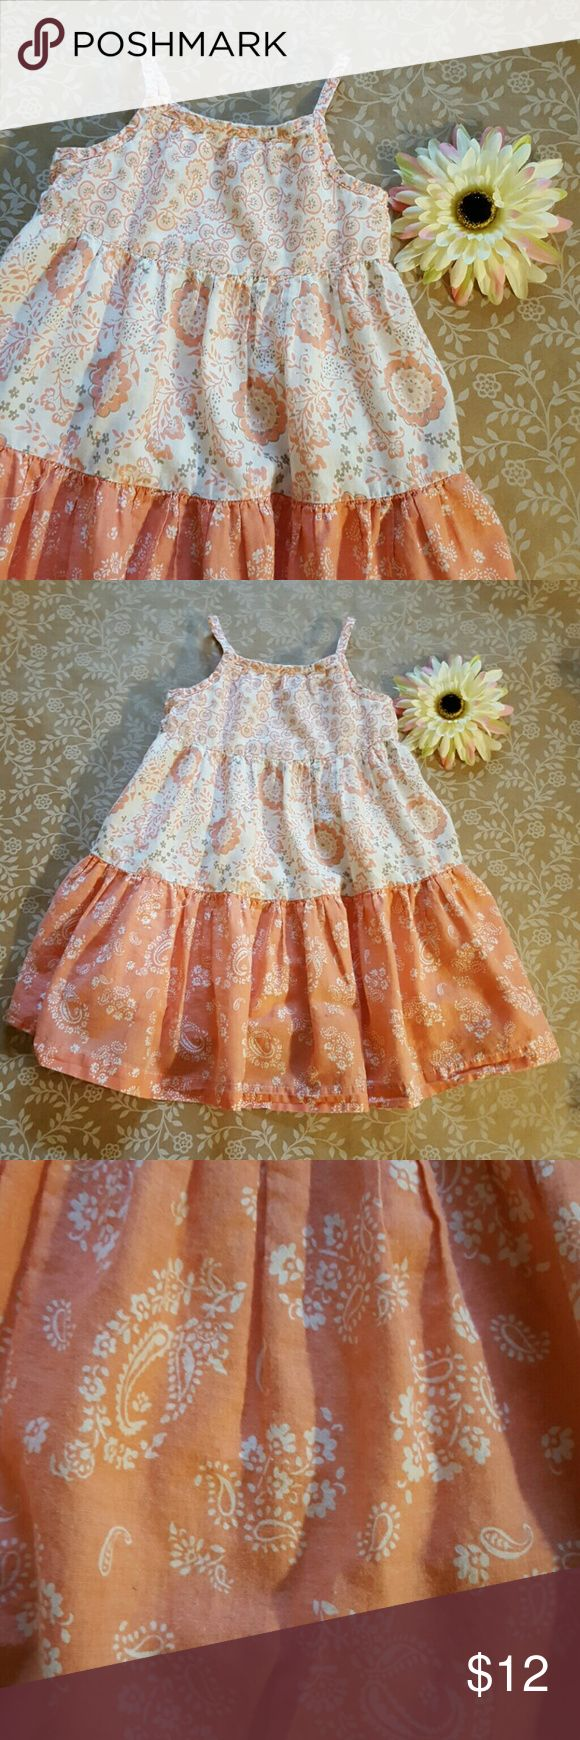 Coral Sundress by Old Navy 18-24 Months Good Used condition. Small spot on bottom of dress see last picture. Under layer for volume. Cotton. Old Navy Dresses Casual